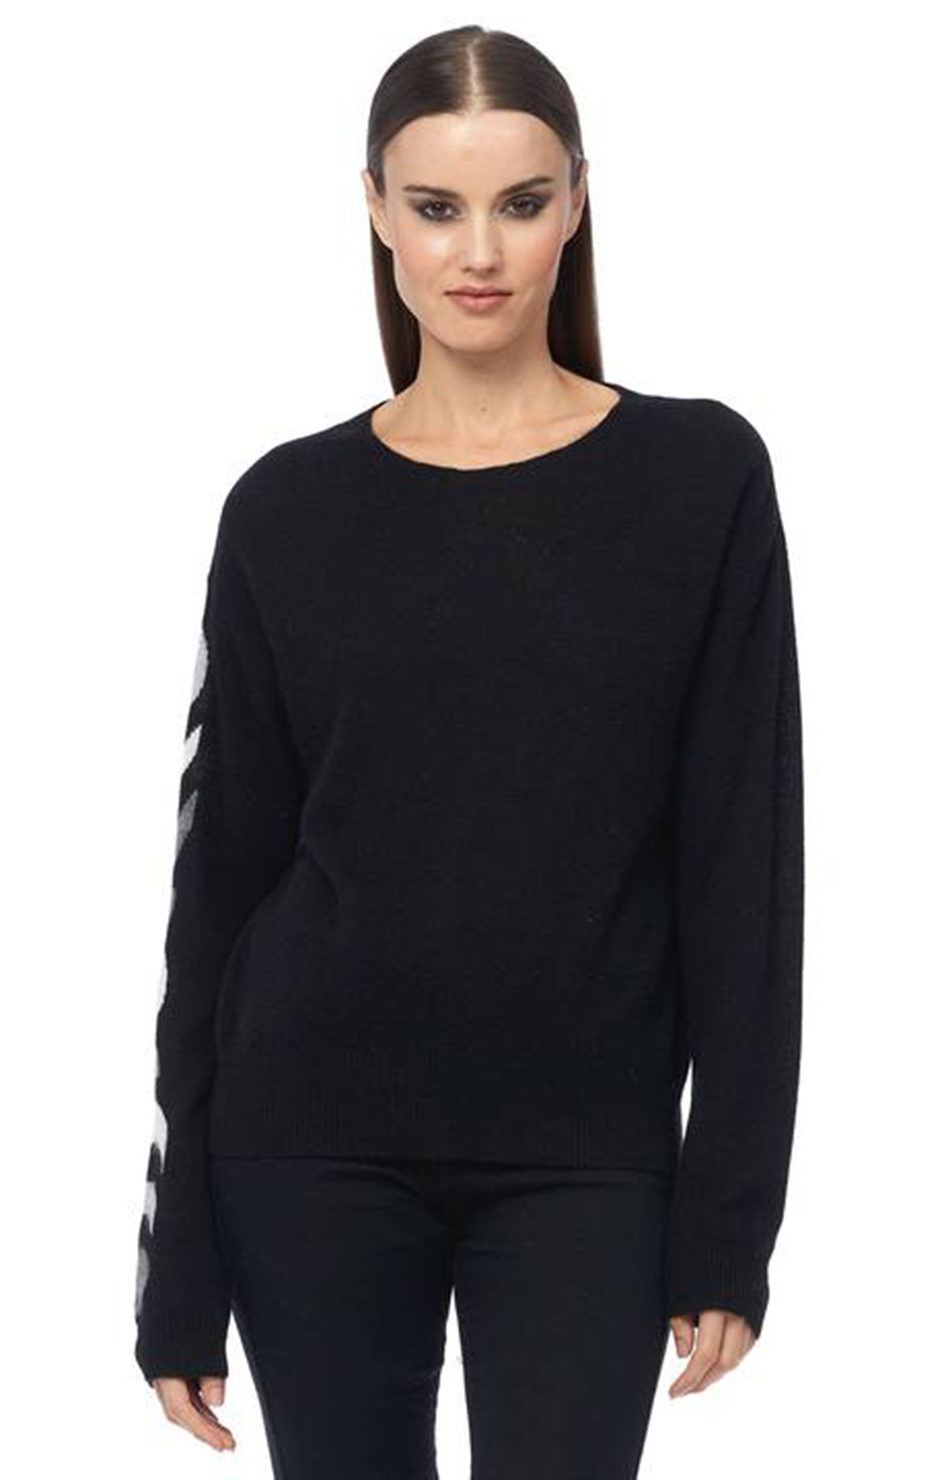 360 Cashmere Luna Sweater Black/Grey